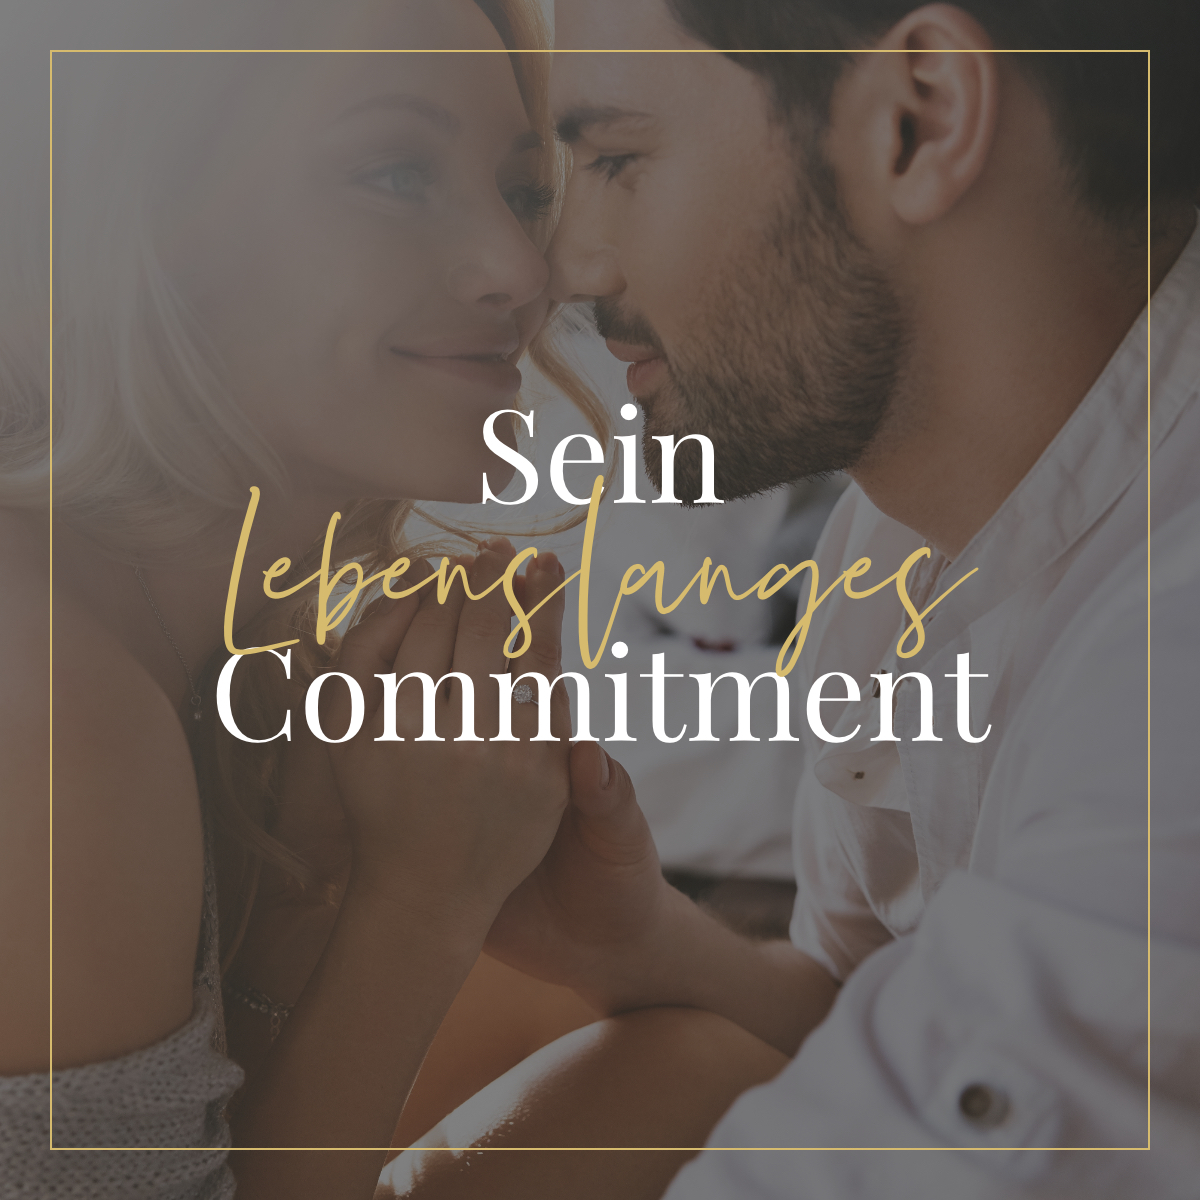 Sein lebenslanges Commitment